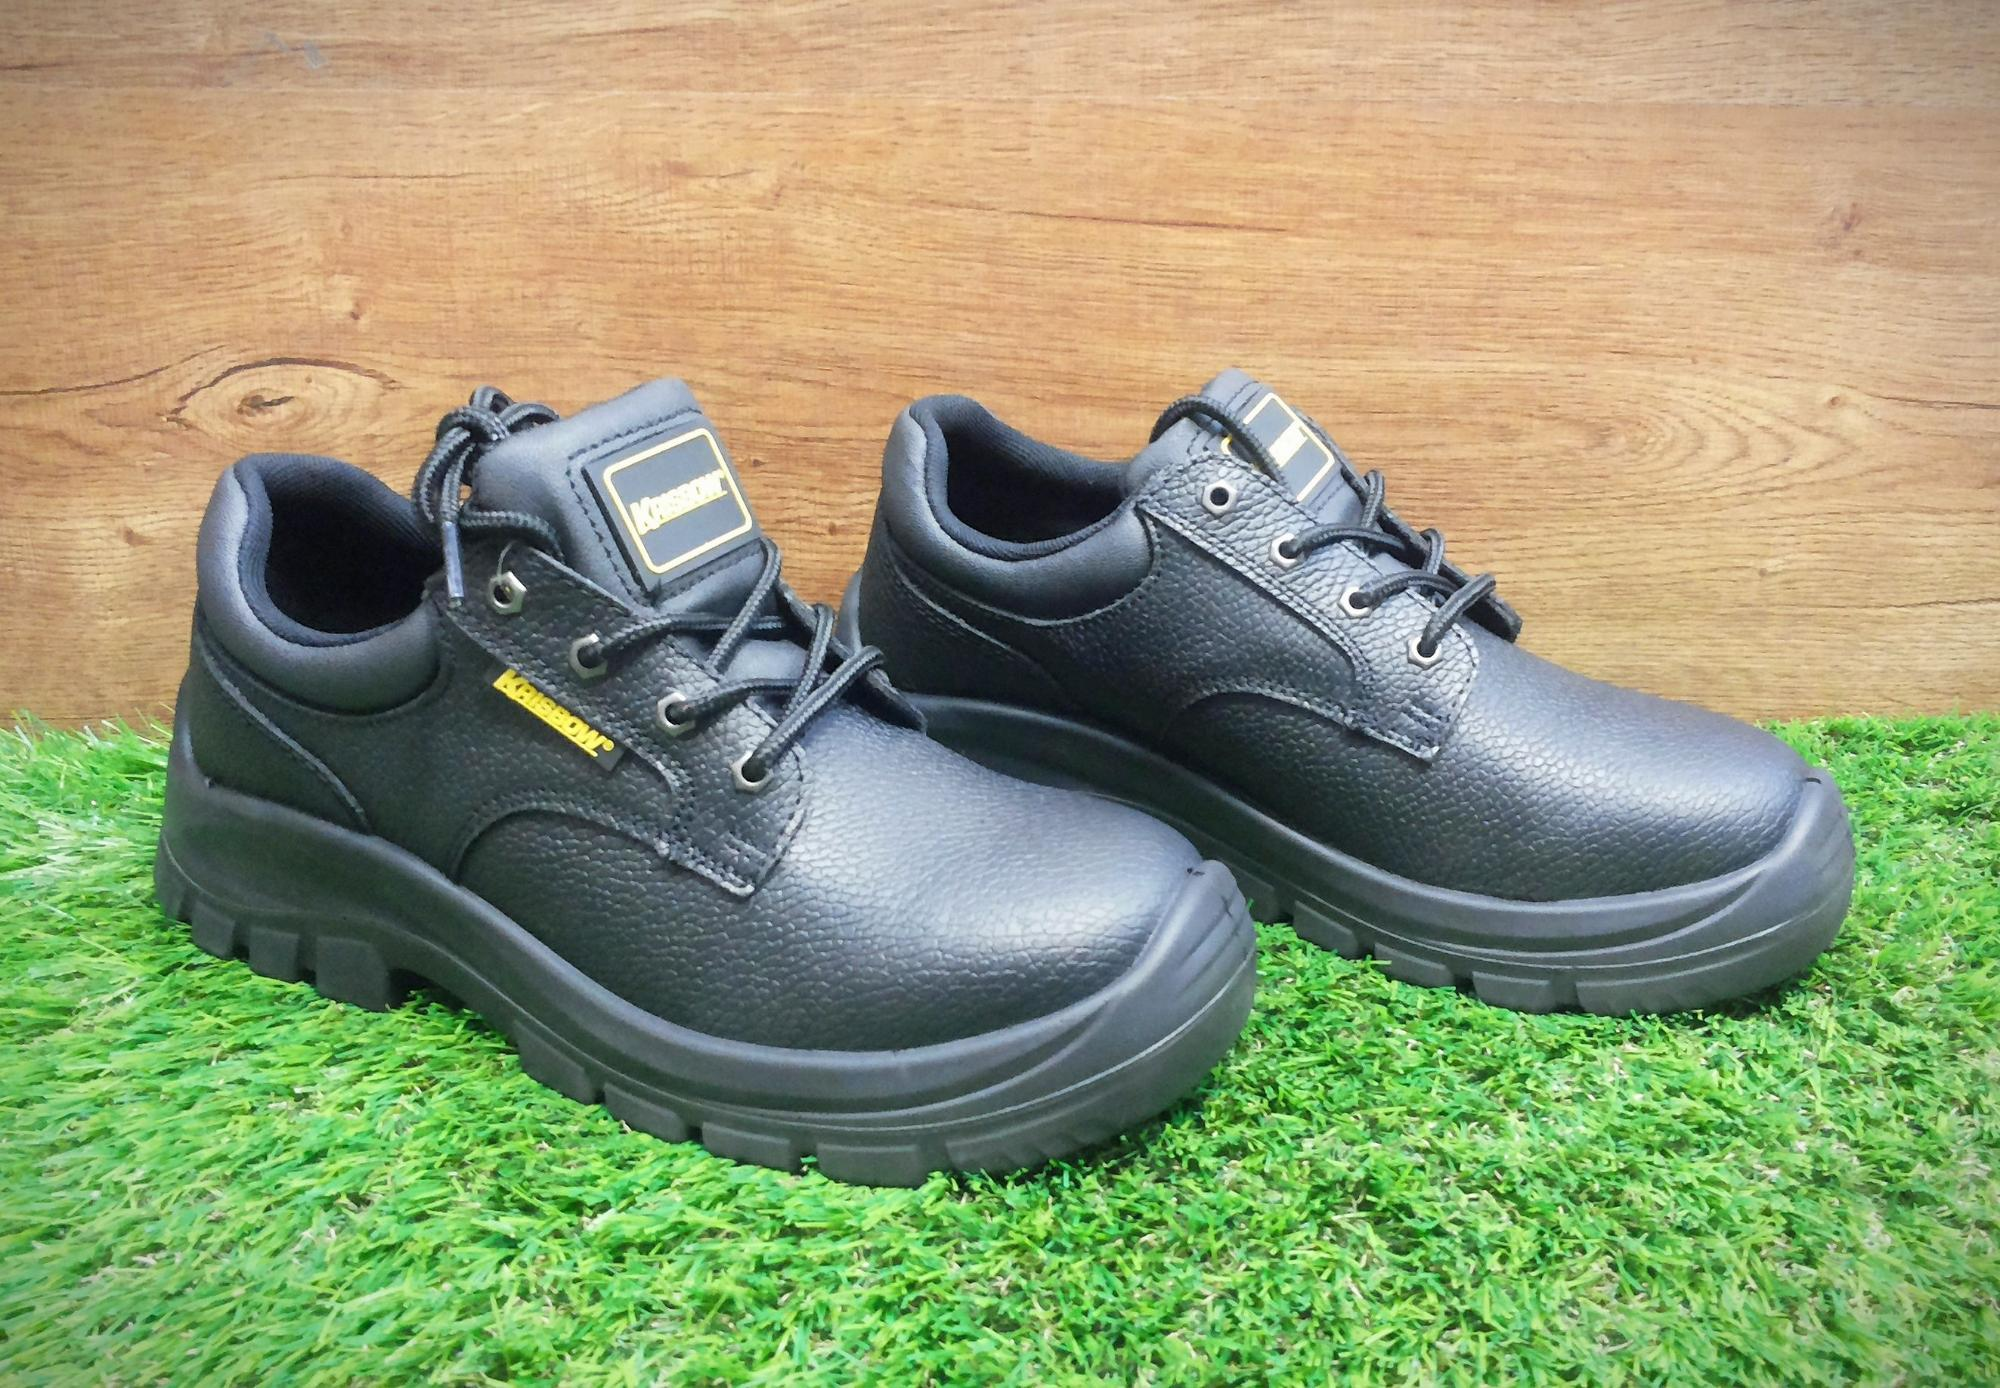 Safety shoes krisbow tipe Maxi 4 inch sepatu pengaman krisbow tipe MAXI 4 inch